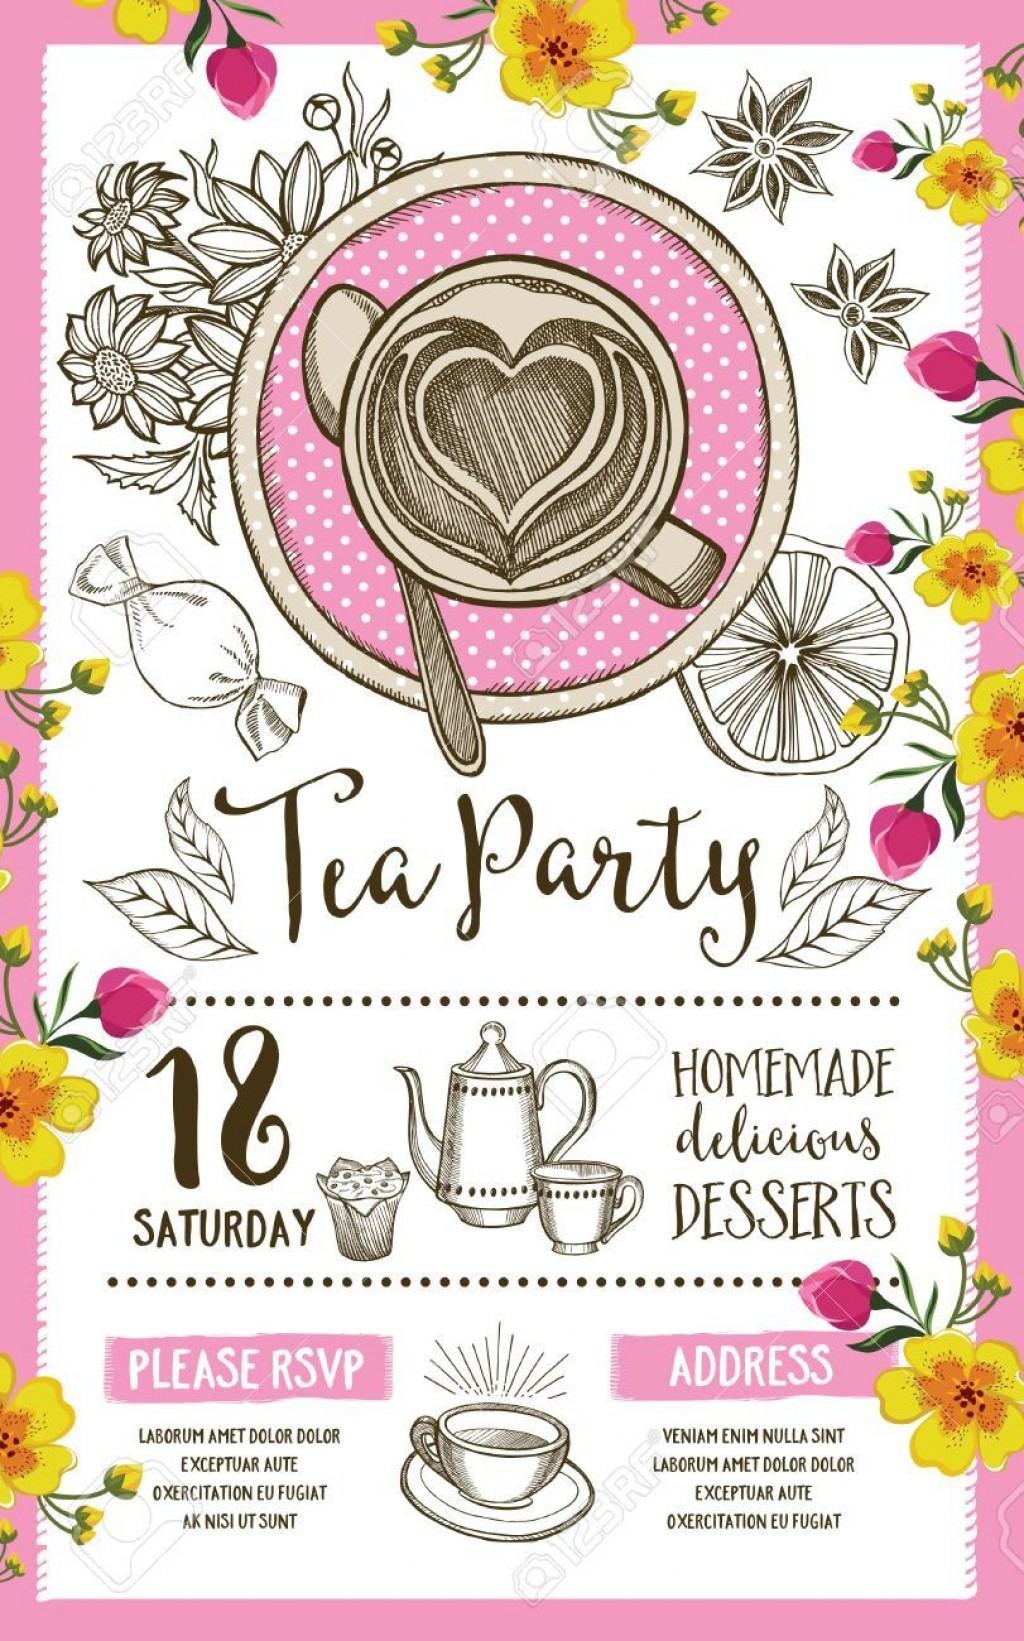 004 Wonderful Tea Party Invitation Template Inspiration  Online LetterLarge